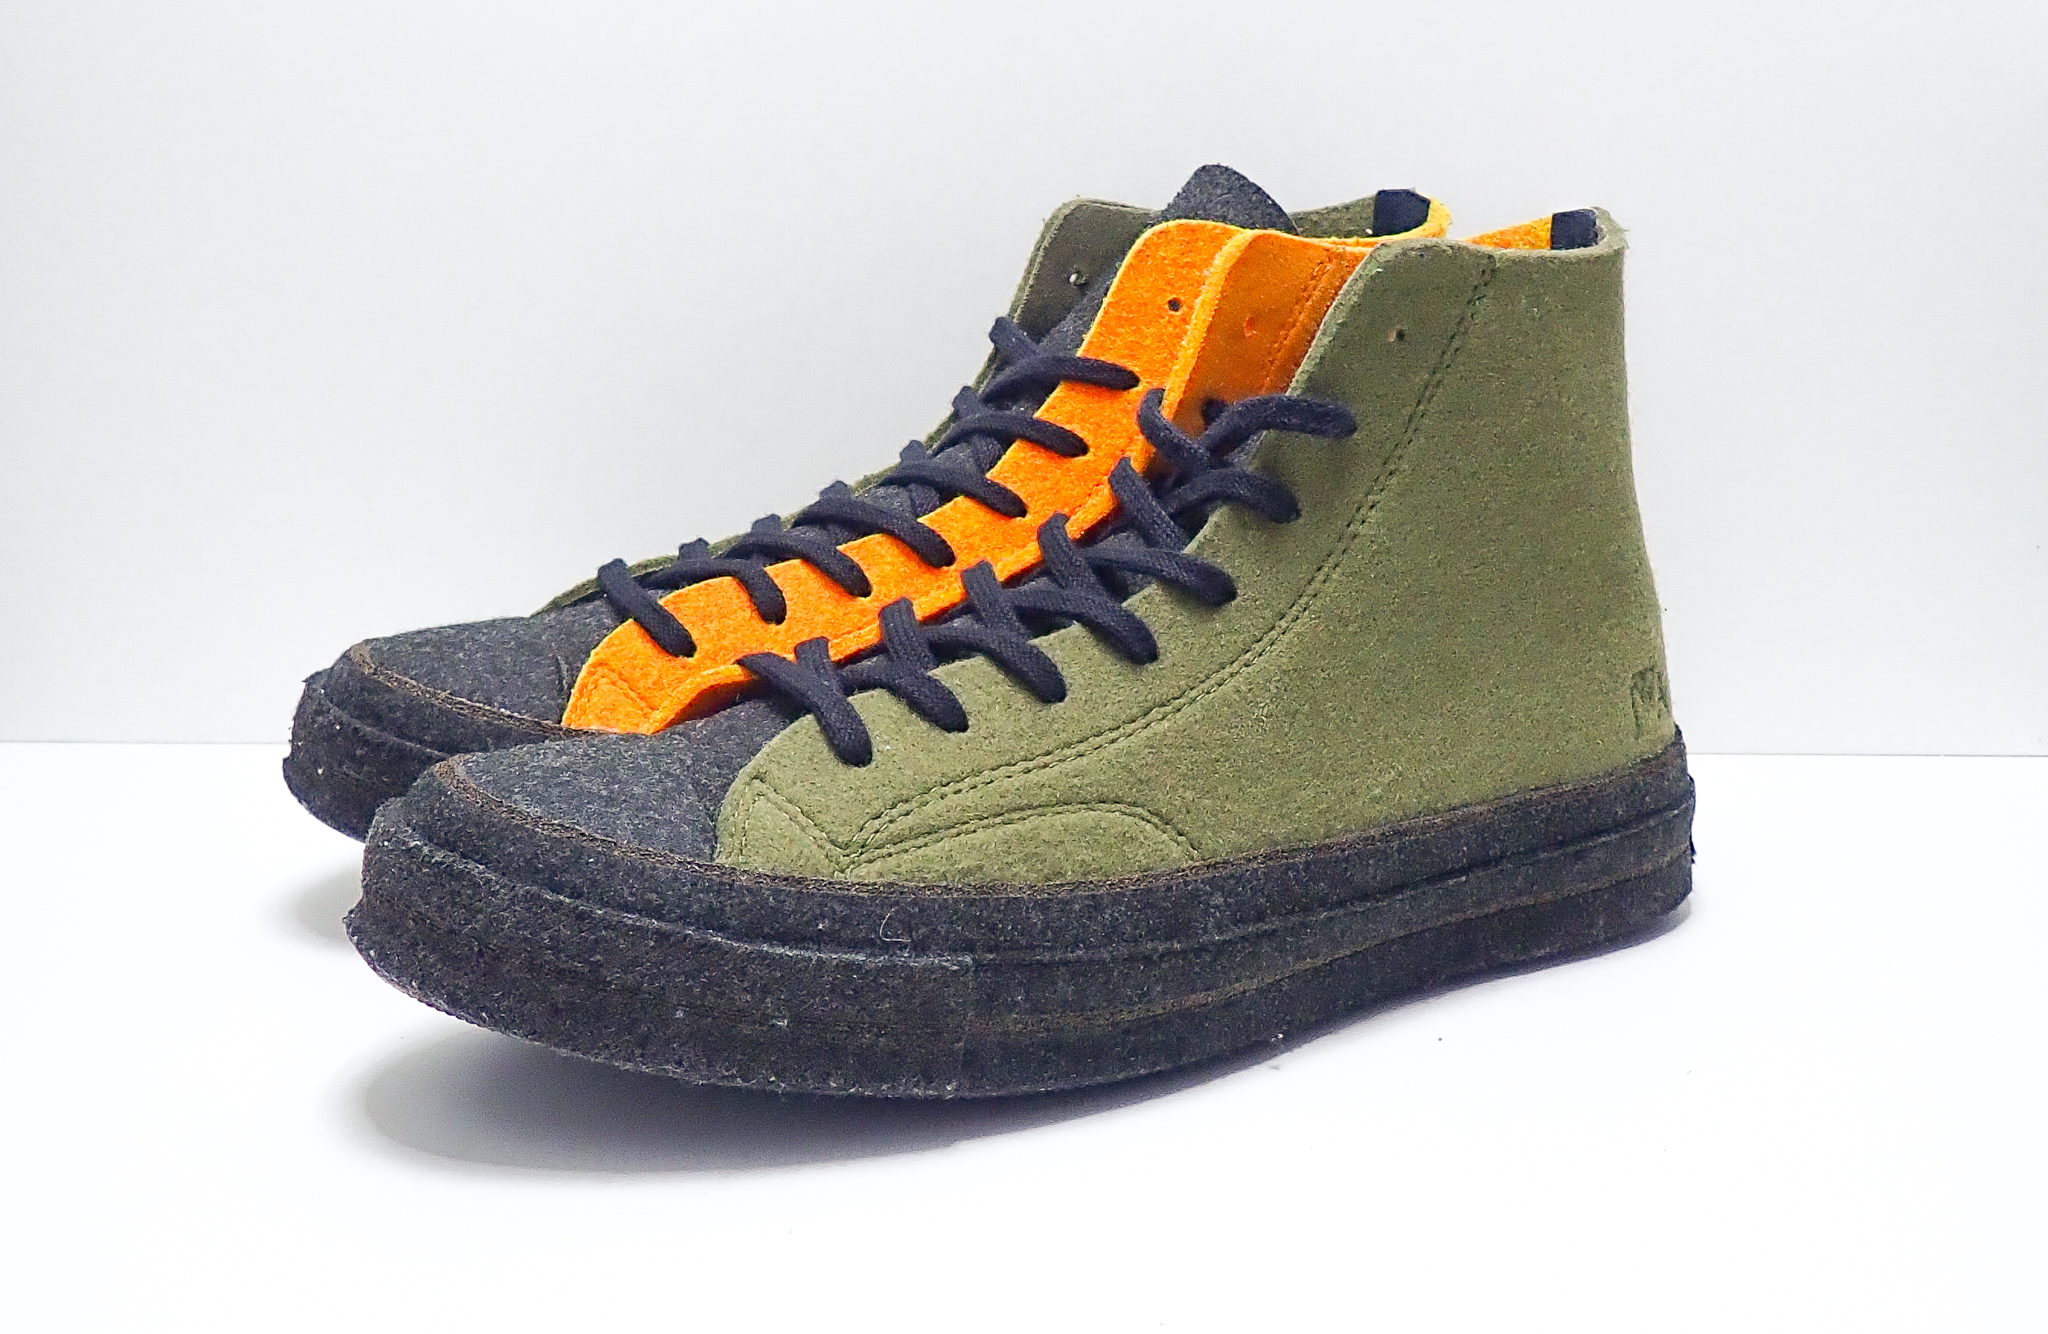 Converse Chuck Taylor All-Star 70s Hi JW Anderson